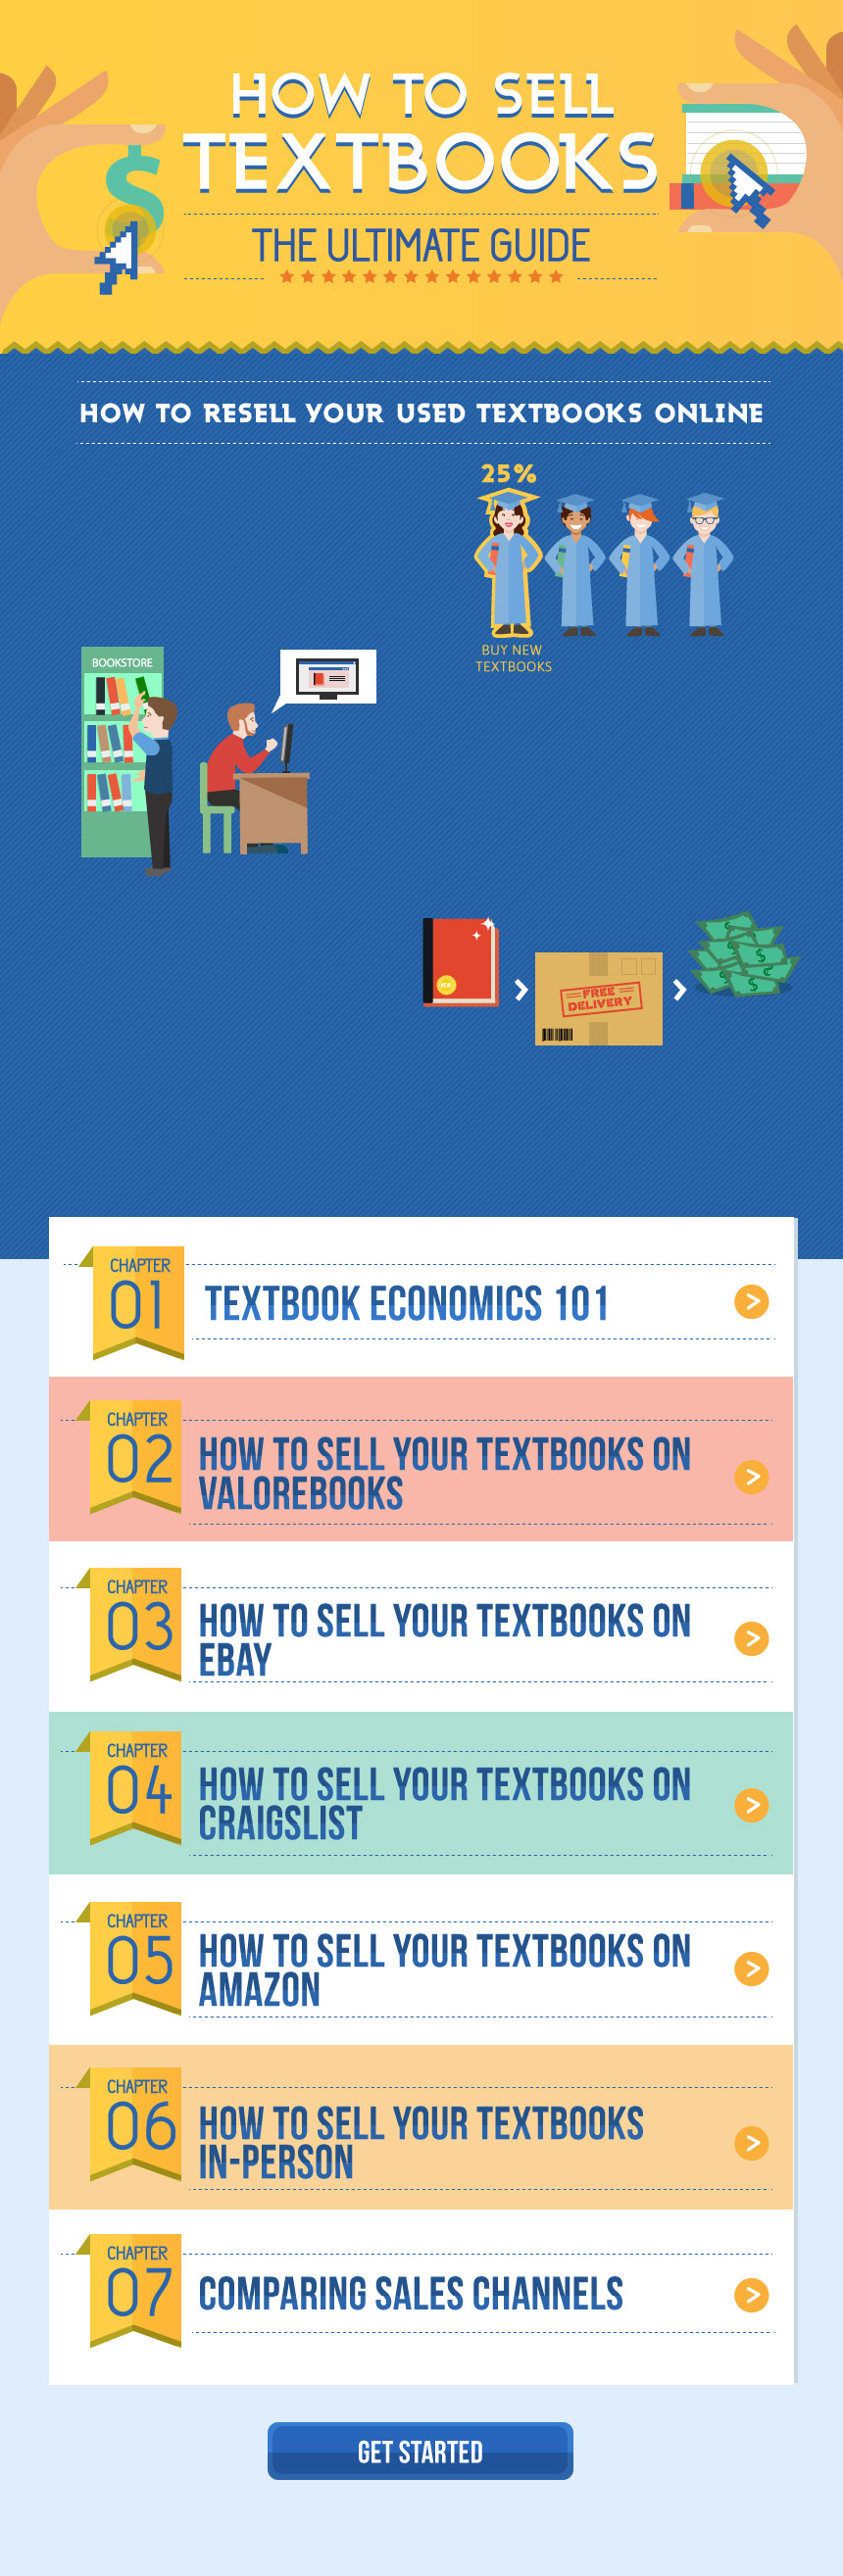 how to sell your textbooks online